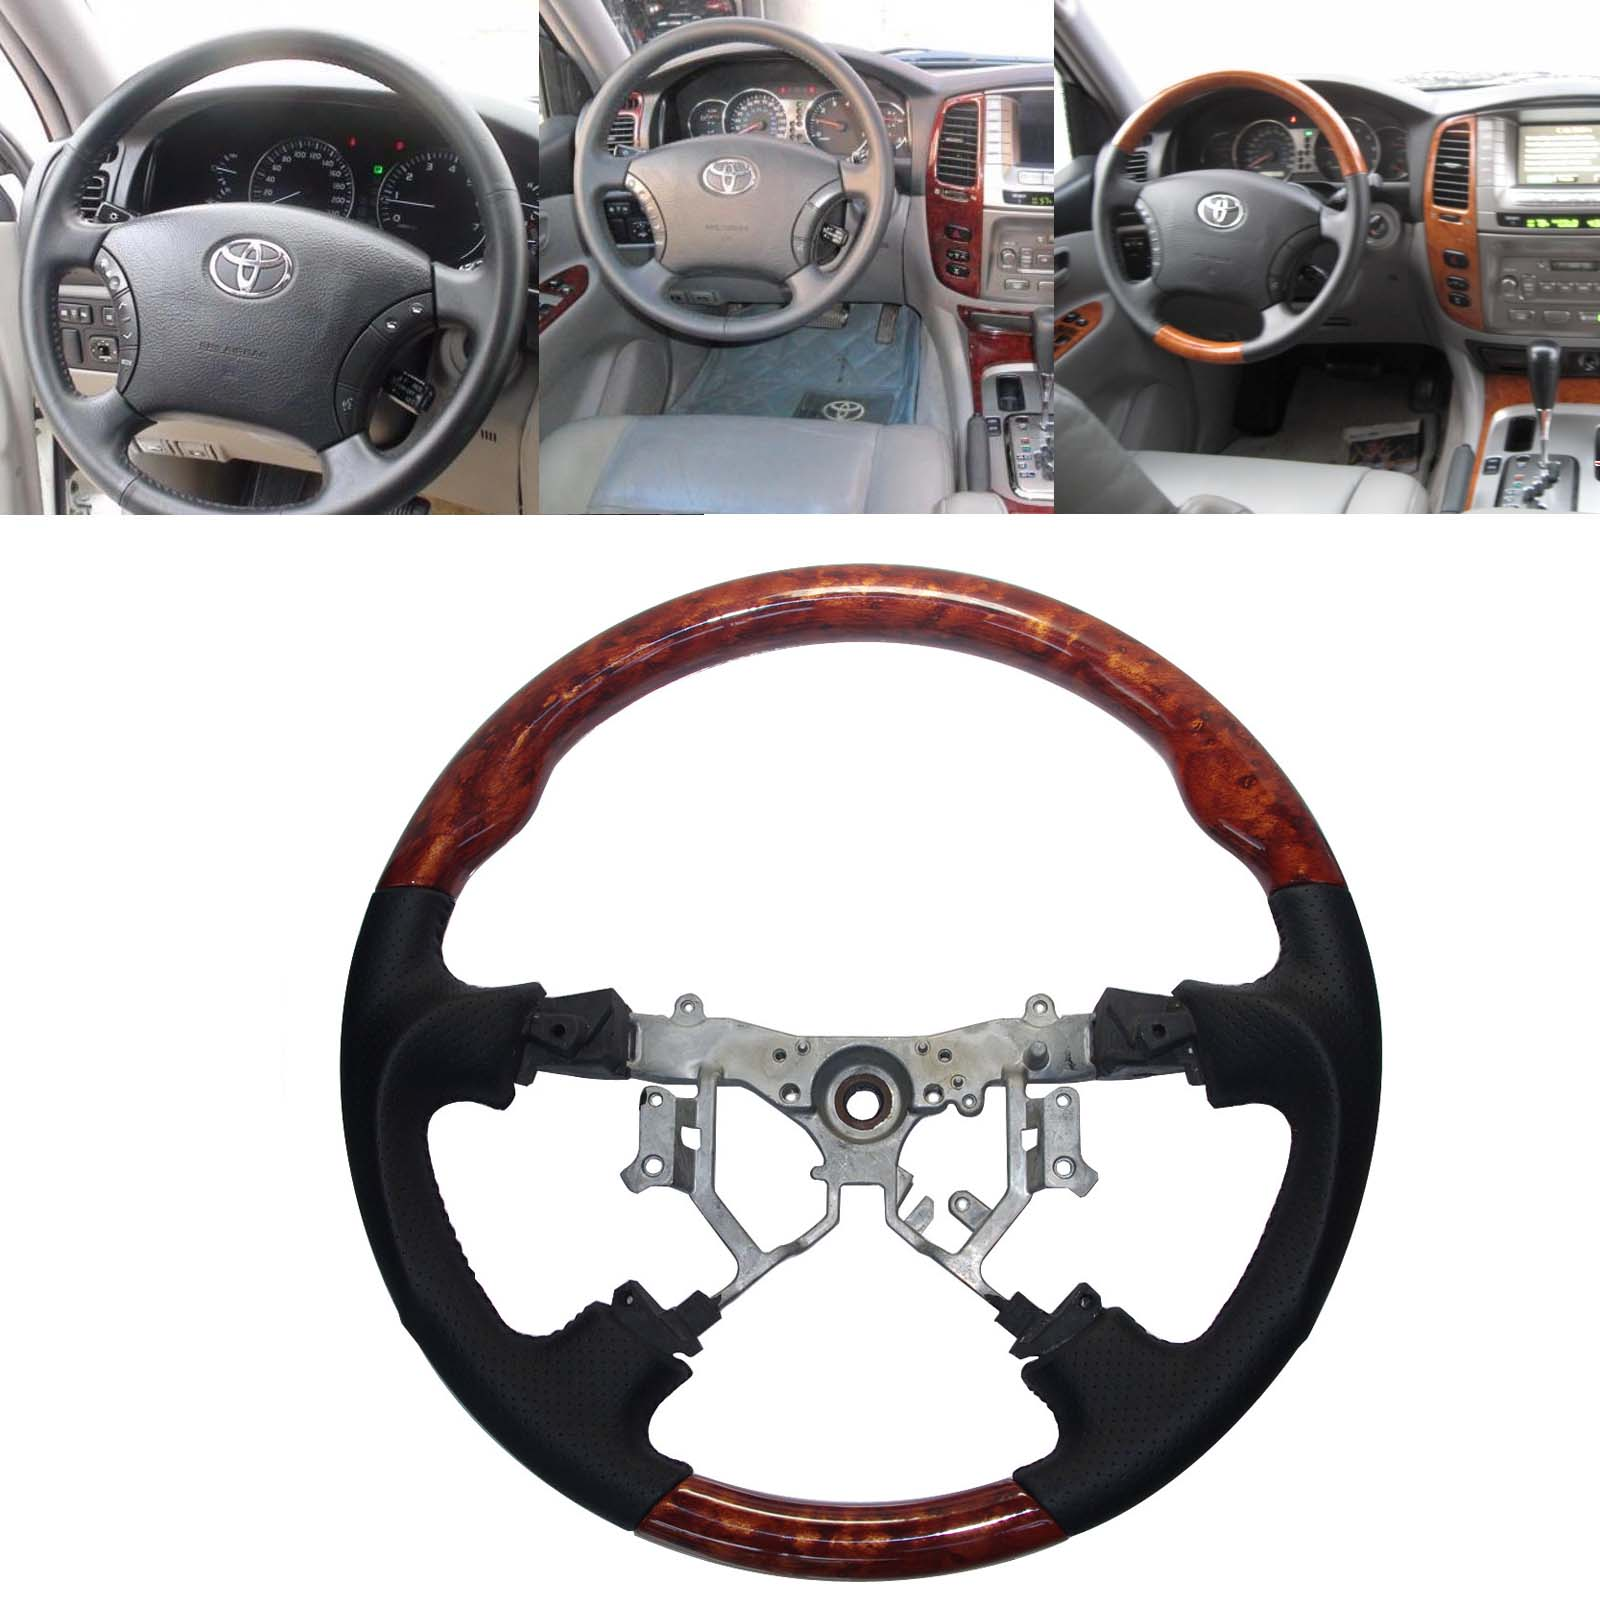 medium resolution of black leather wood steering wheel for 2003 2009 toyota 4runner sequoia sienna tundra camry previa tacoma hiace estima hilux